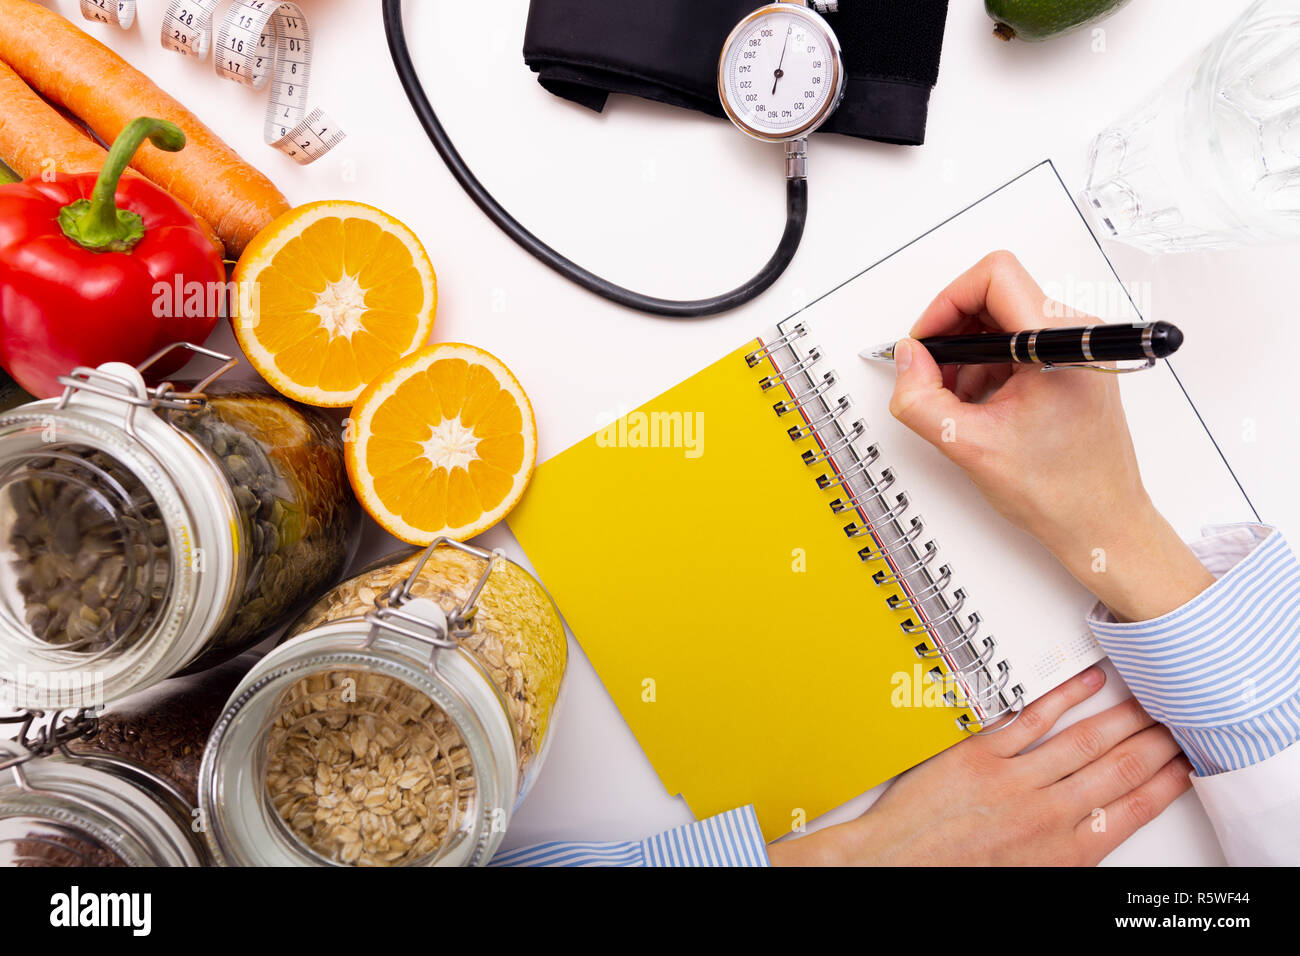 Vegetable diet nutrition and medication concept. Nutritionist offers healthy vegetables diet. Stock Photo